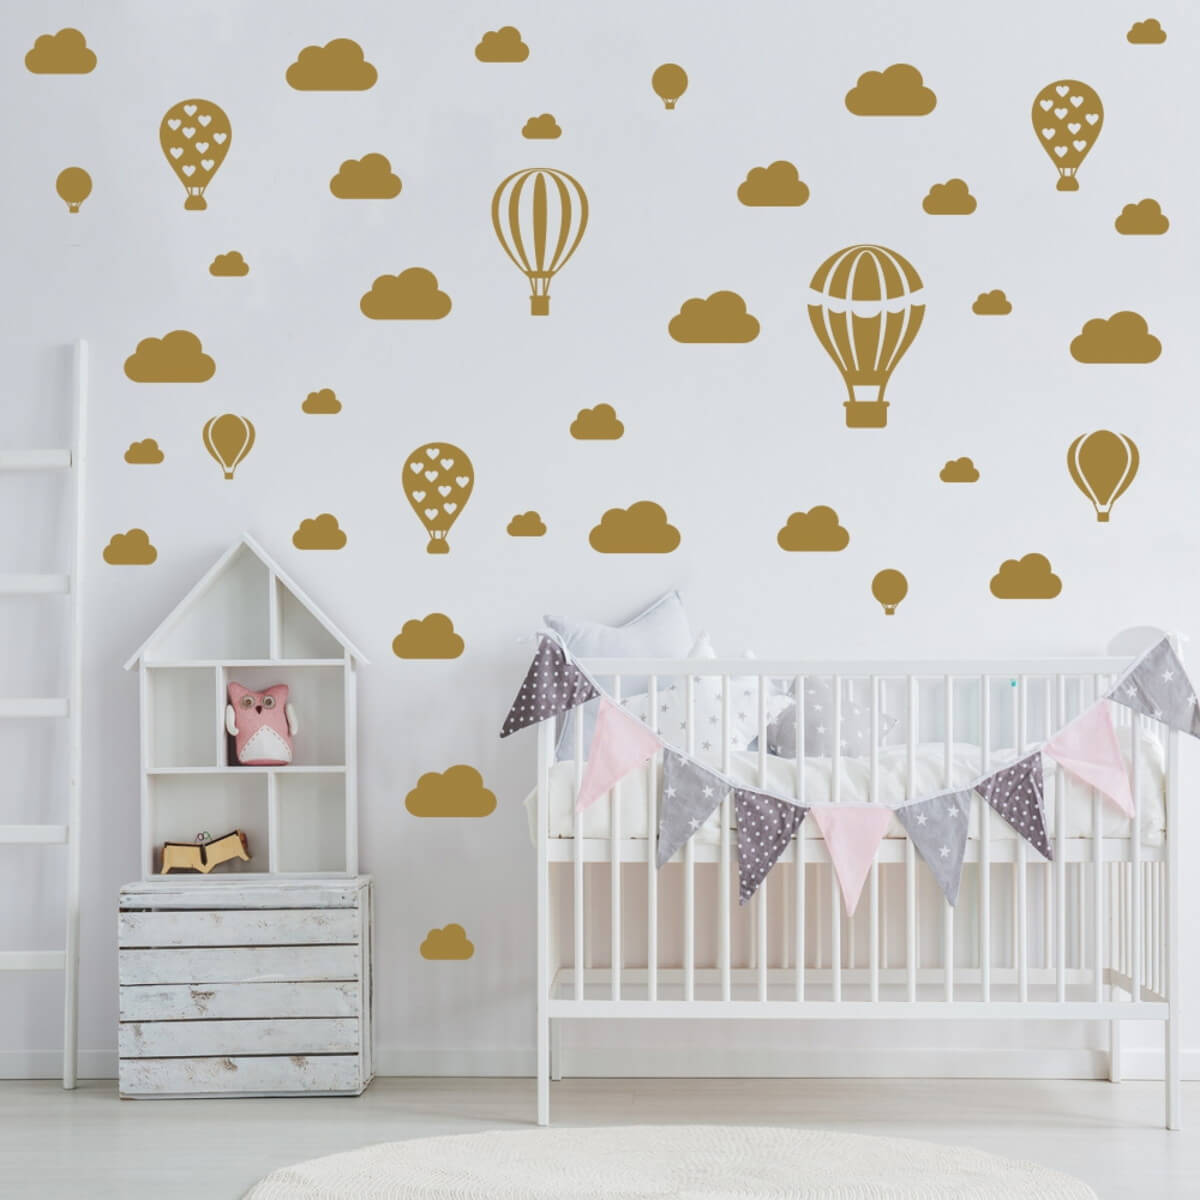 55 Gorgeous Baby Girl Room Ideas With Cute And Adorable Nursery